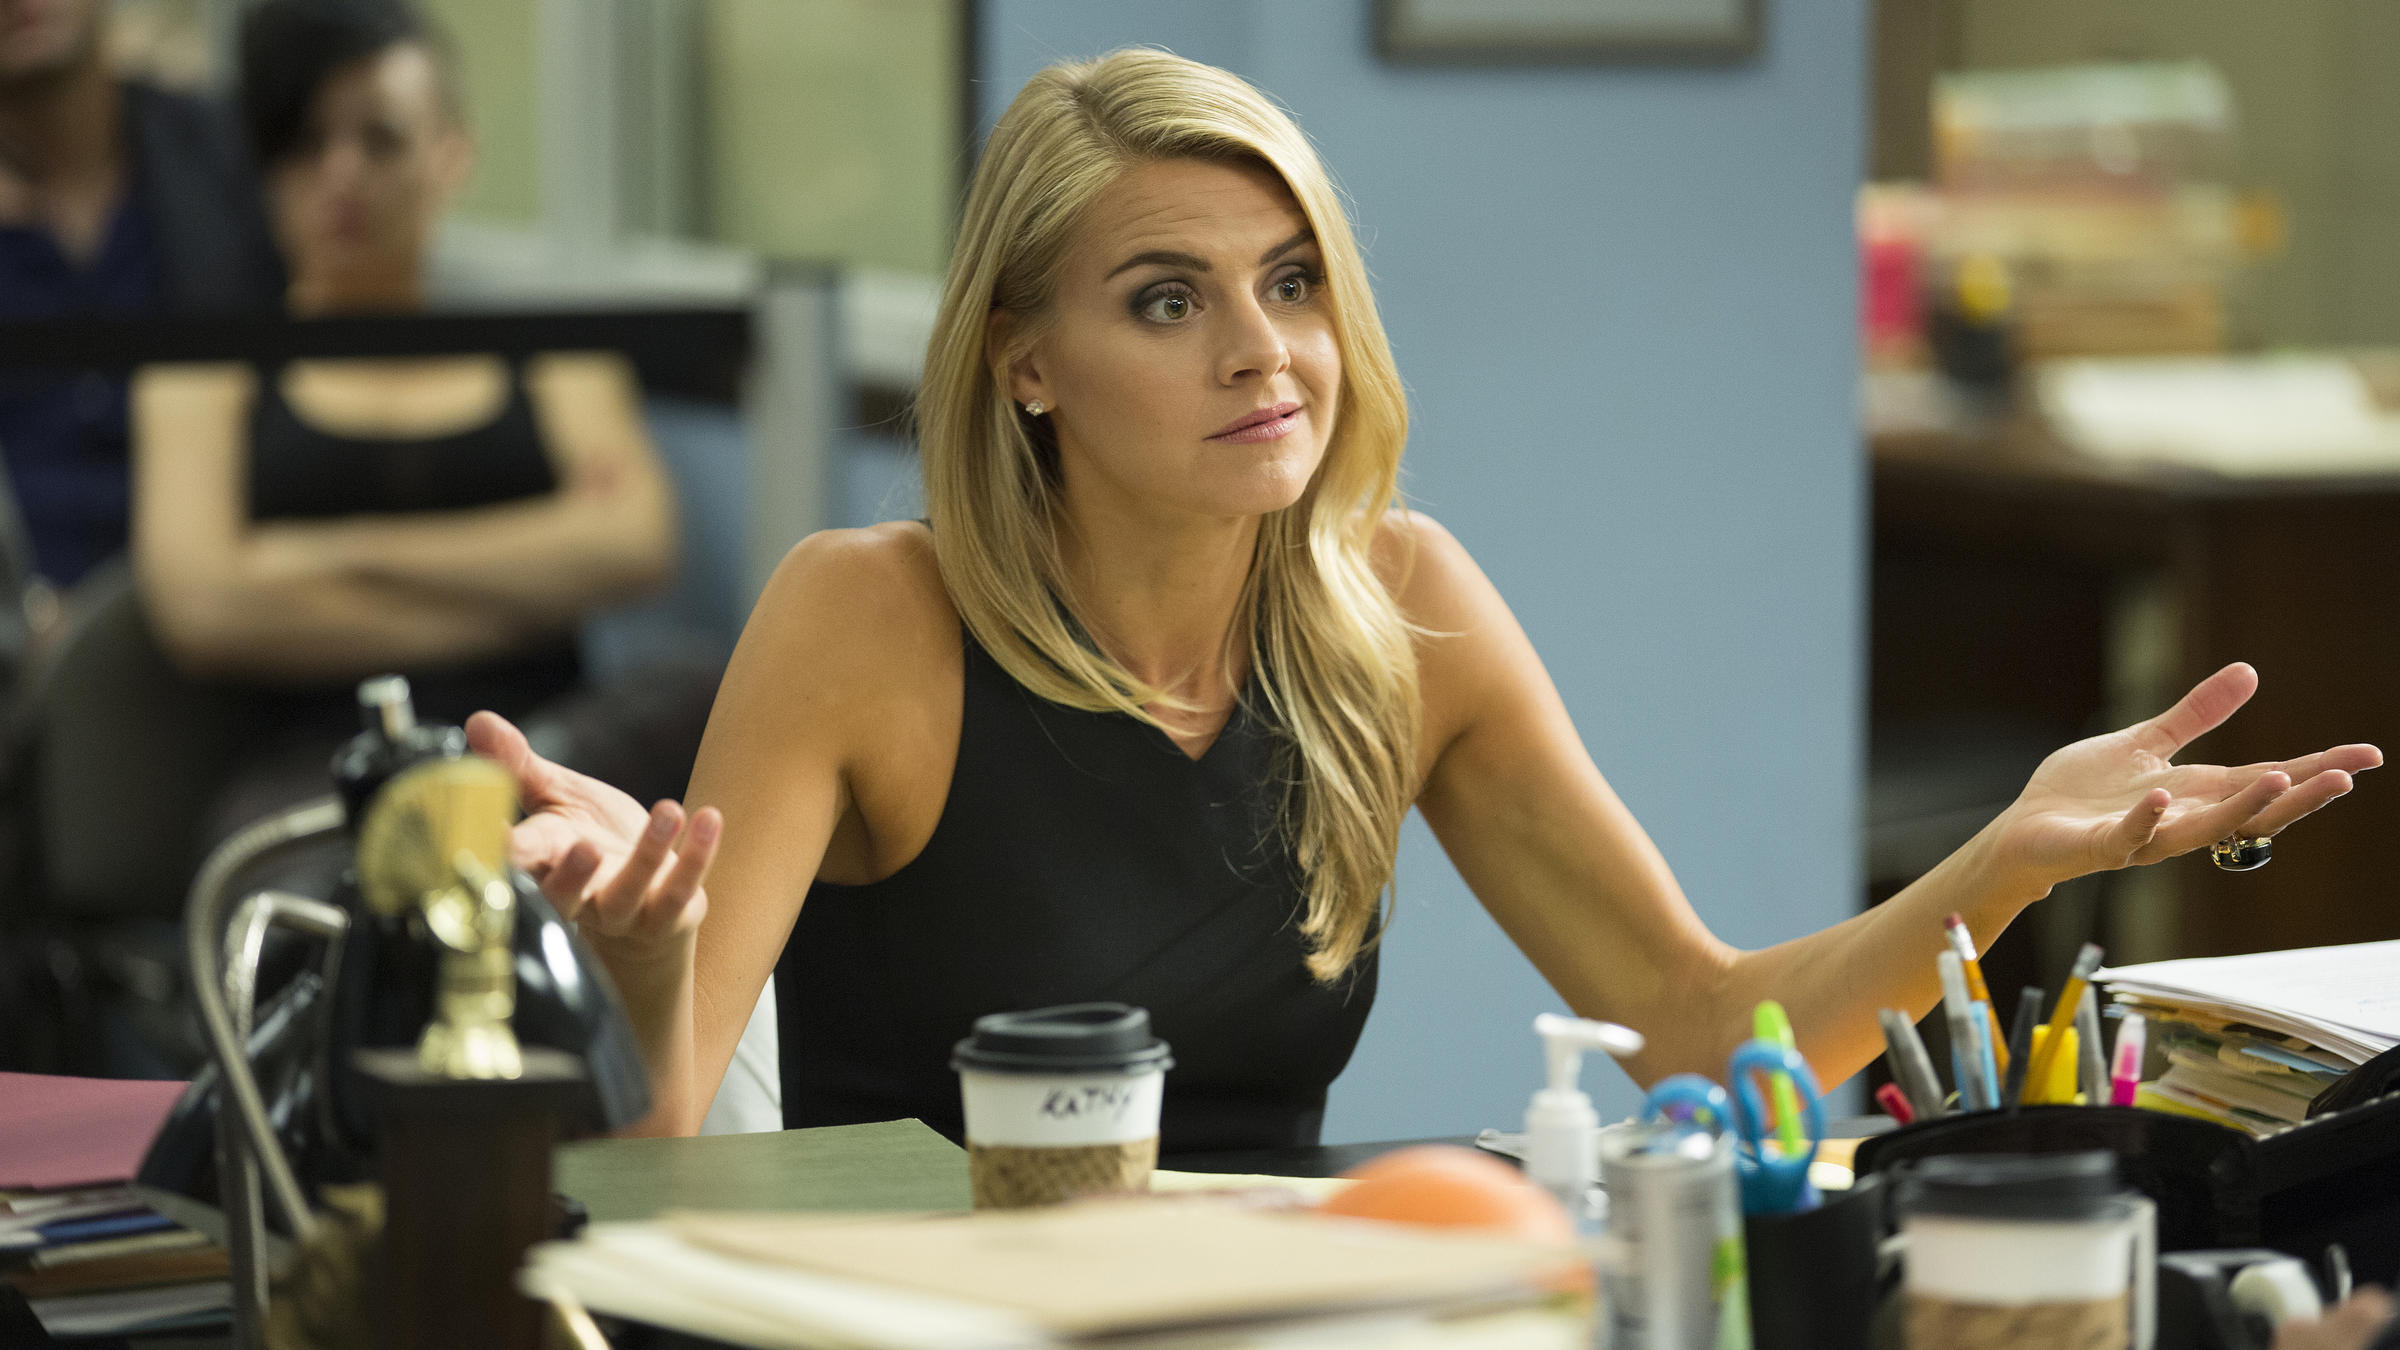 eliza coupeeliza coupe height, eliza coupe photo, eliza coupe scrubs, eliza coupe zimbio, eliza coupe instagram, eliza coupe, eliza coupe twitter, eliza coupe wiki, eliza coupe happy endings, eliza coupe dailymotion, eliza coupe imdb, eliza coupe workout, eliza coupe quantico, eliza coupe husband